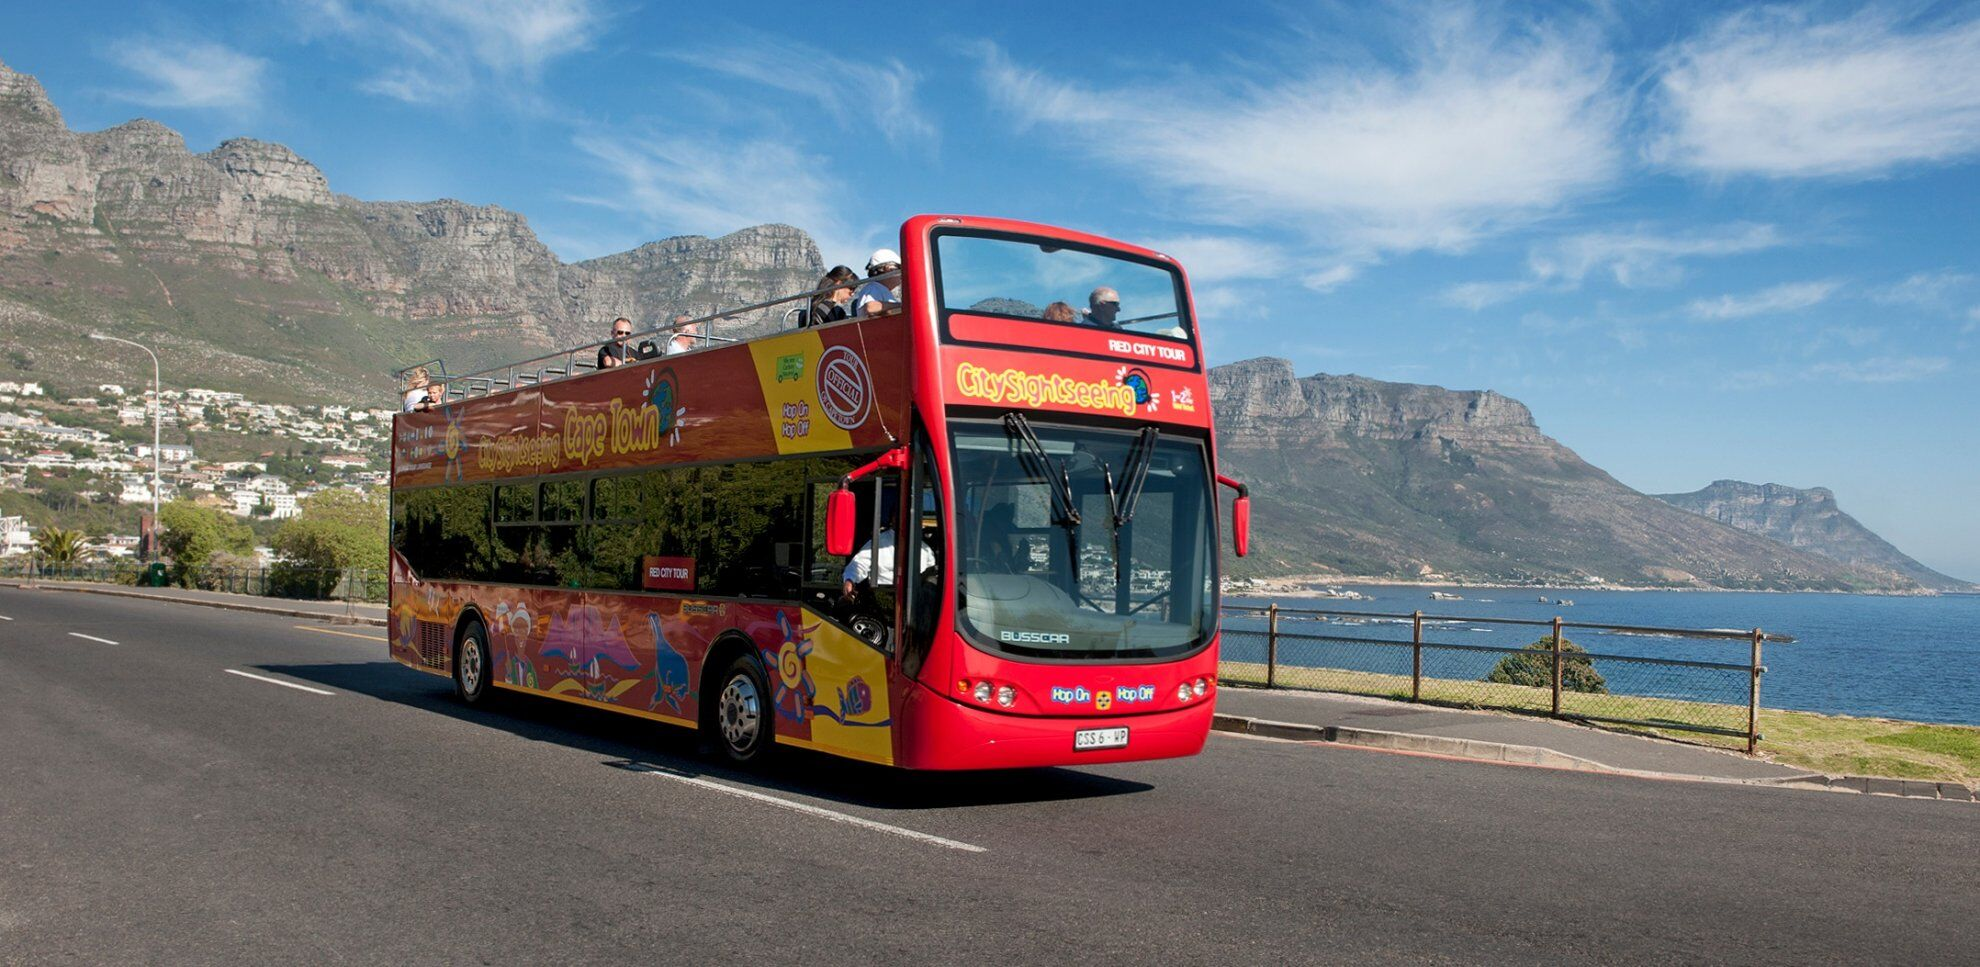 City Sightseeing Hop On Hop Off Bus Routes | iVenture City Pass